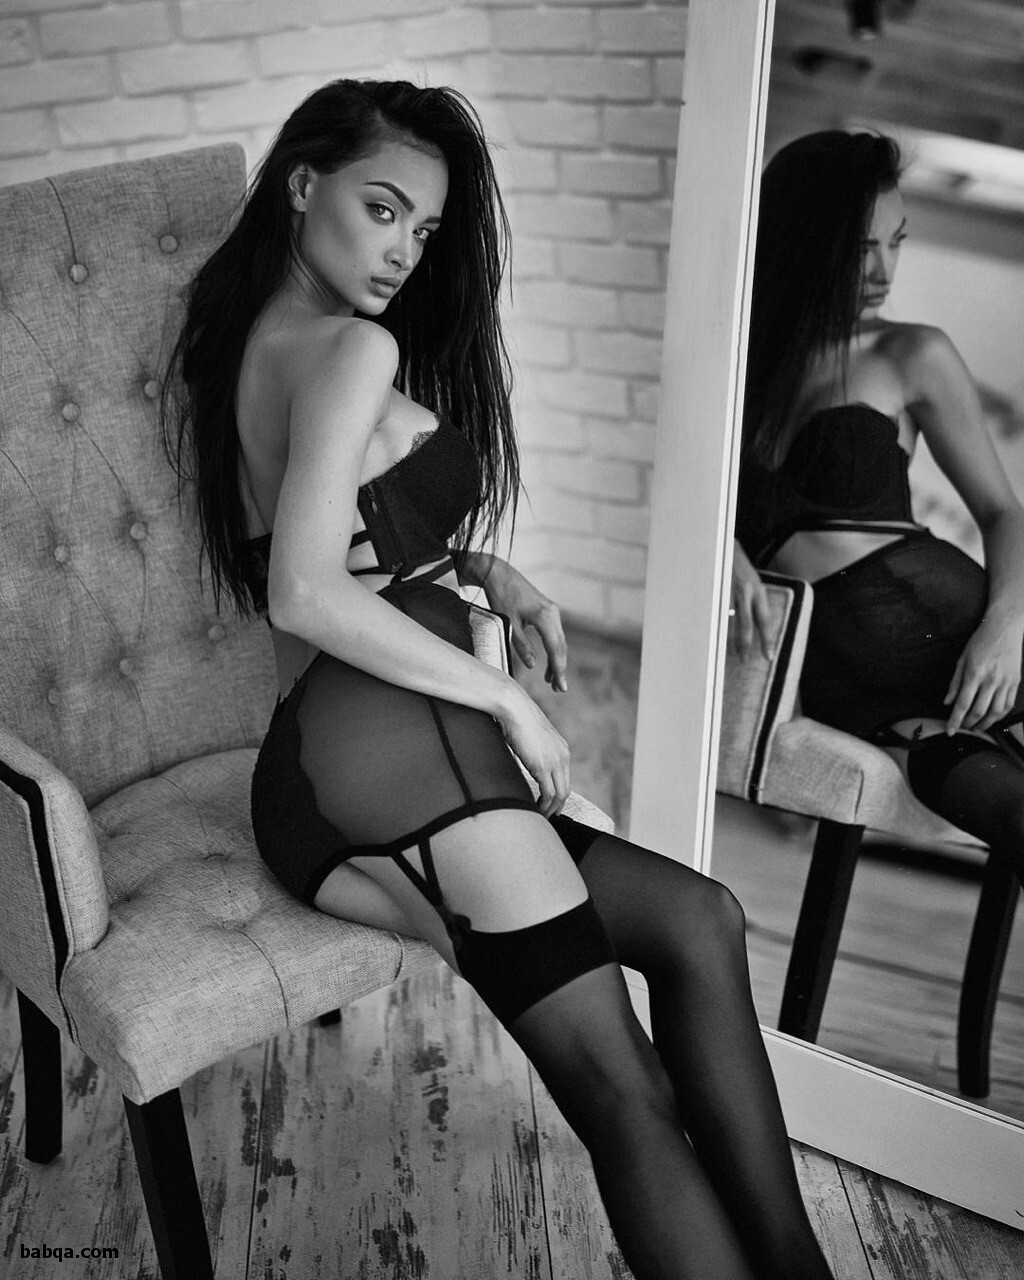 girls in stockings and panties and lingerie hot sexy